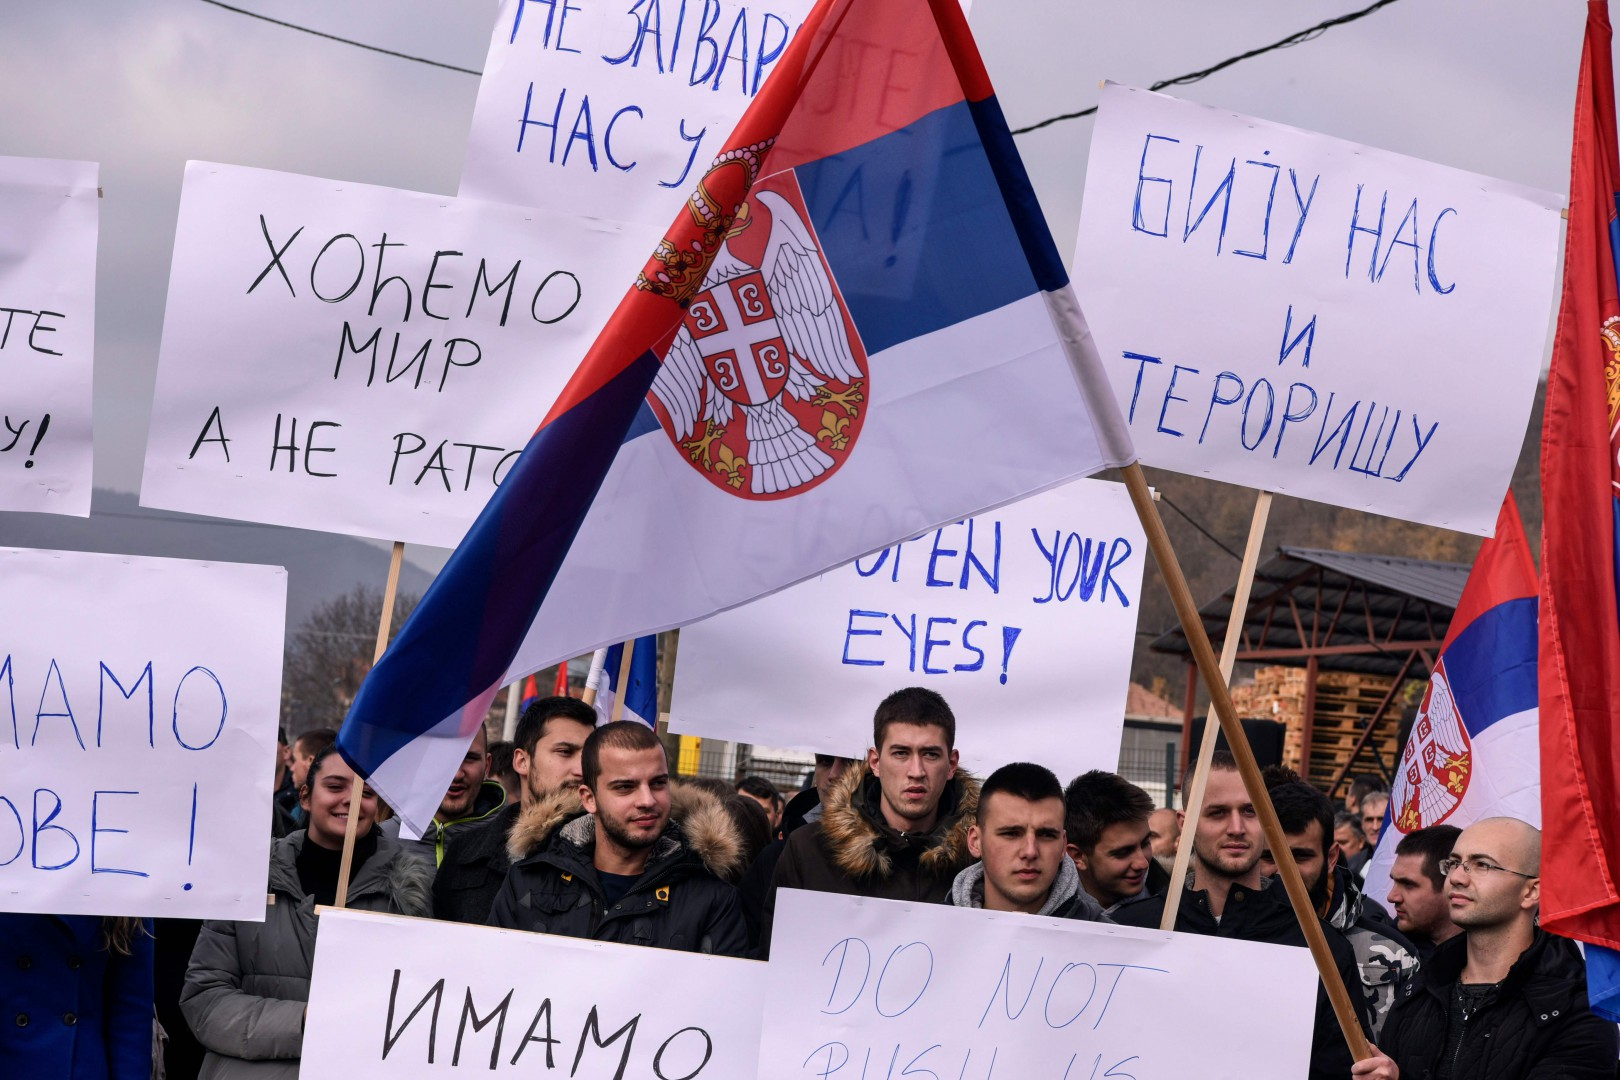 A demonstrator holds the Serbian national flag as Kosovo Serbs gather during a protest in the village of Rudare in northern Mitrovica on November 23, 2018, following Kosovo's move to slap Serbian imports with a 100 percent tariff. - Kosovo's move has triggered a new surge of tensions between the former war foes on November 22. Kosovo announced the tariff on both Serbian and Bosnian goods  -- though excluding international brands -- on November 21 after accusing Belgrade of sabotaging its bid to join Interpol, the international police organisation. Serbia has long fought to thwart Kosovo, which is home to an ethnic Albanian majority, from joining international organisations like the United Nations. (Photo by Armend NIMANI / AFP)